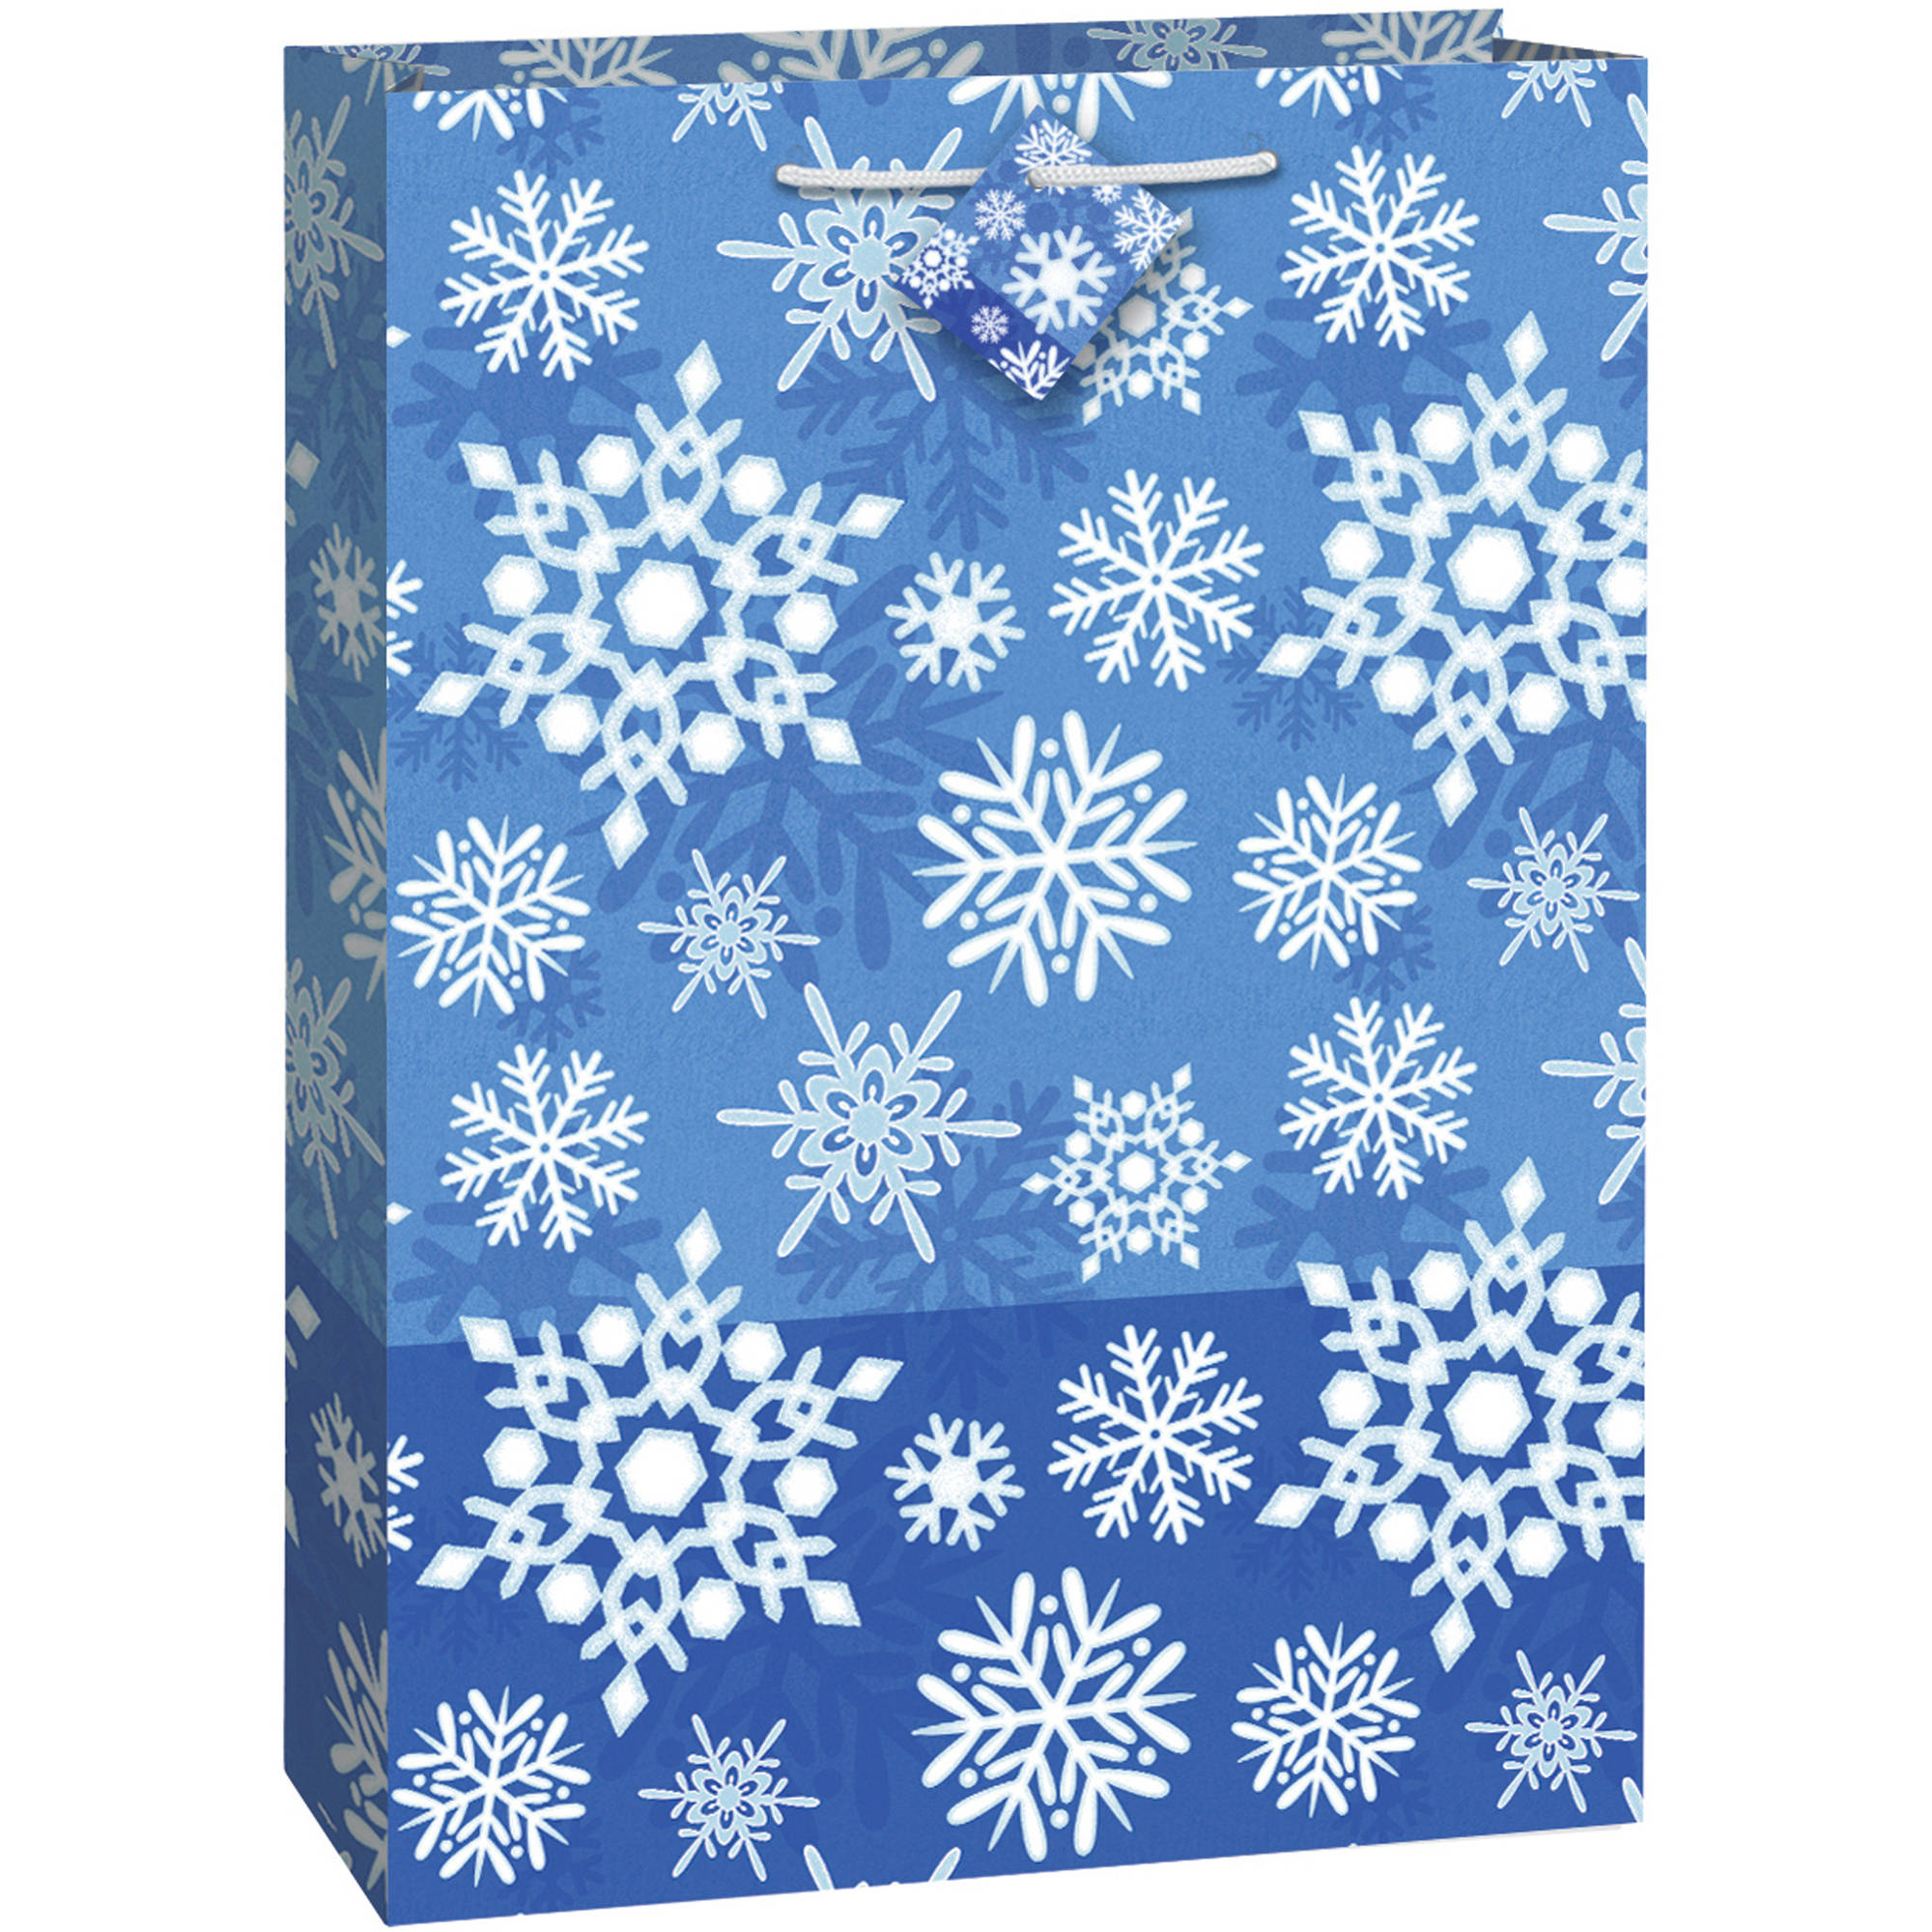 Jumbo Winter Snowflake Holiday Gift Bag